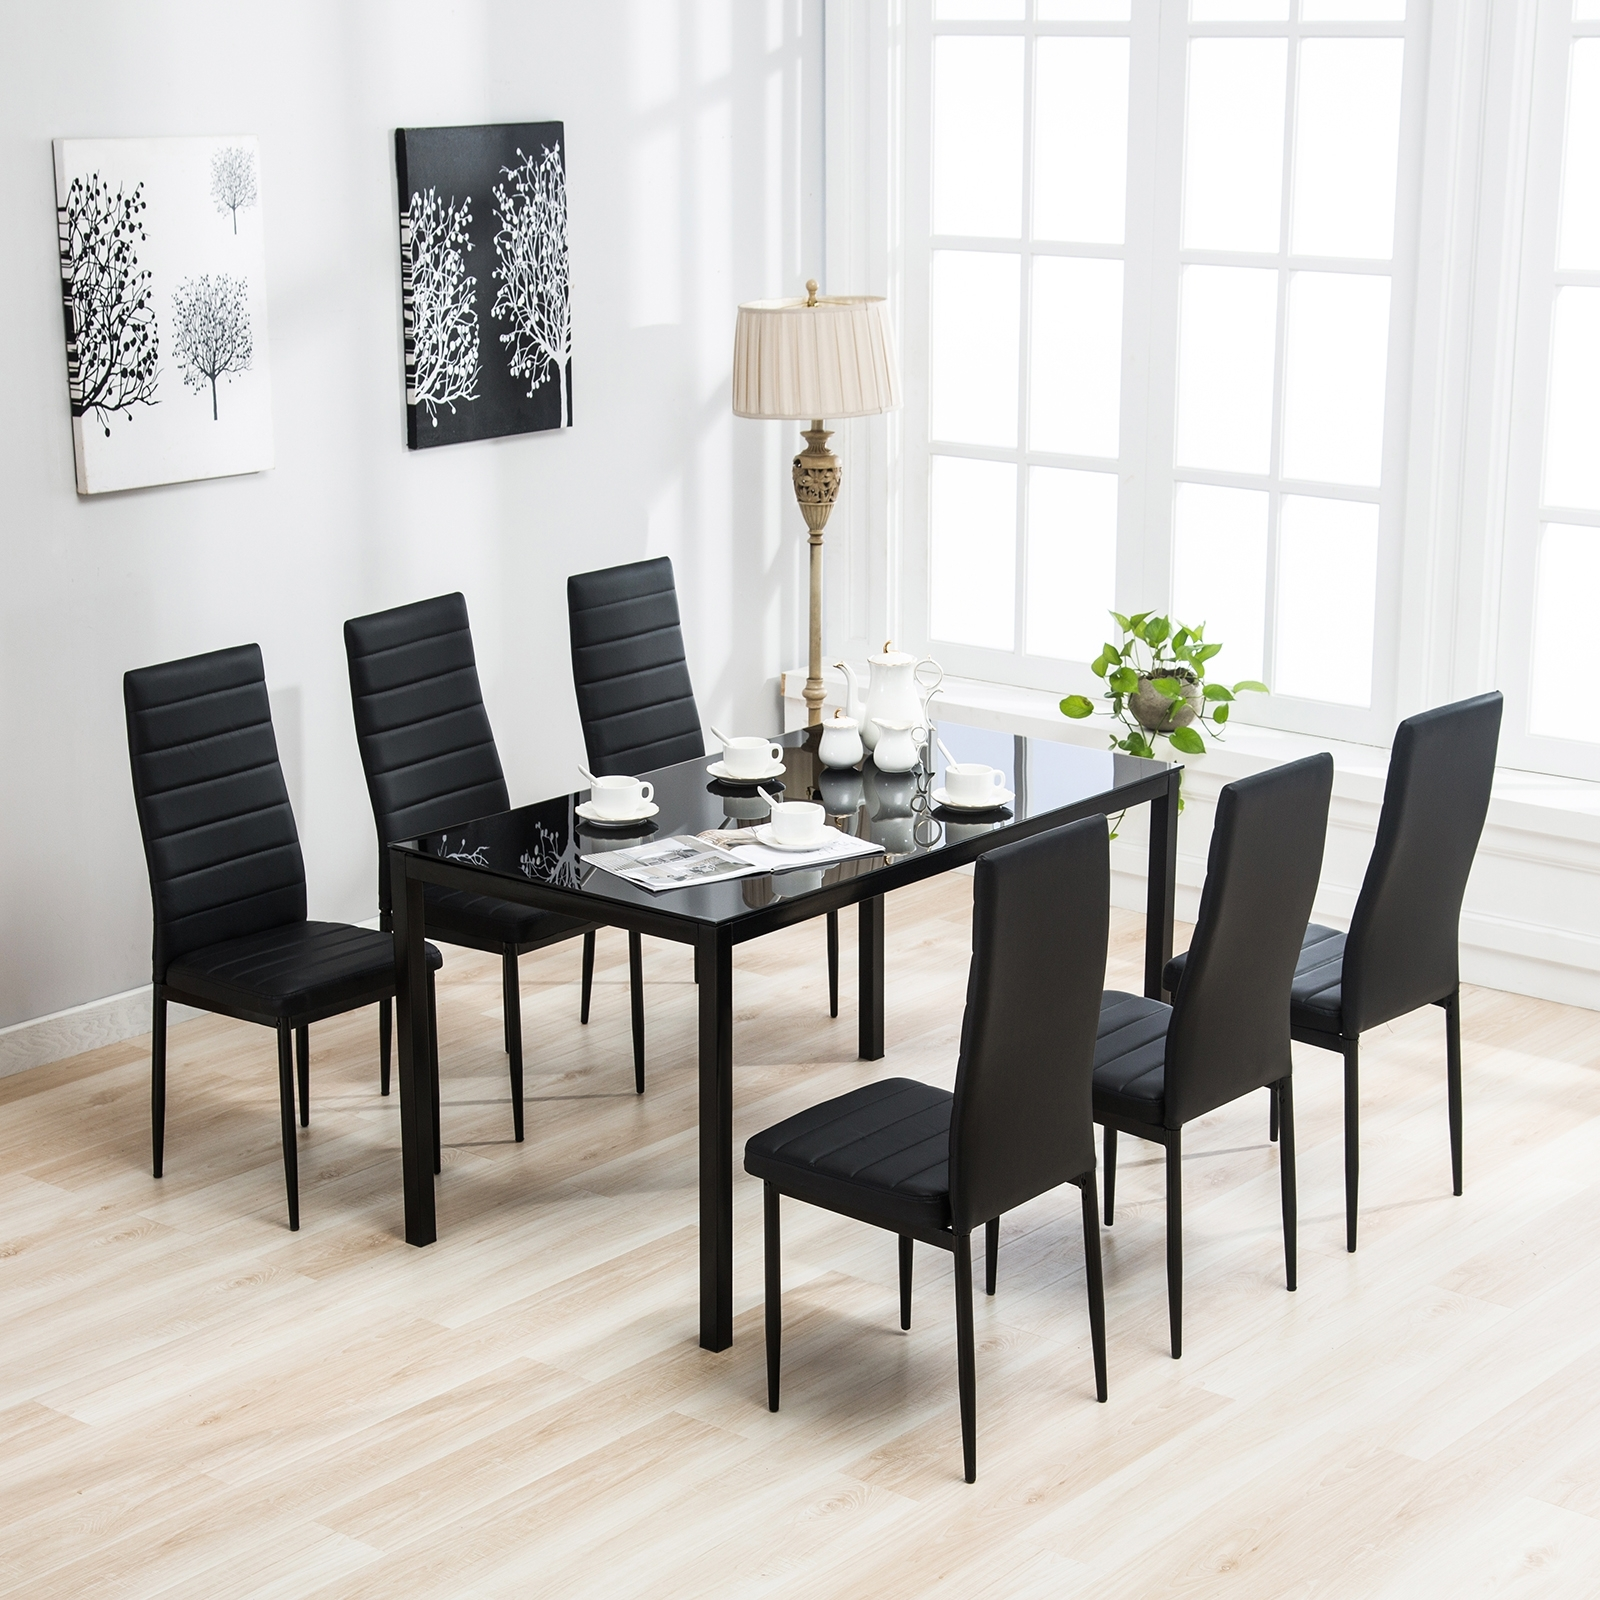 Black Glass Dining Tables 6 Chairs Pertaining To Trendy Dakavia 7 Piece Dining Table Set 6 Chairs Black Glass Metal Kitchen (Gallery 17 of 25)